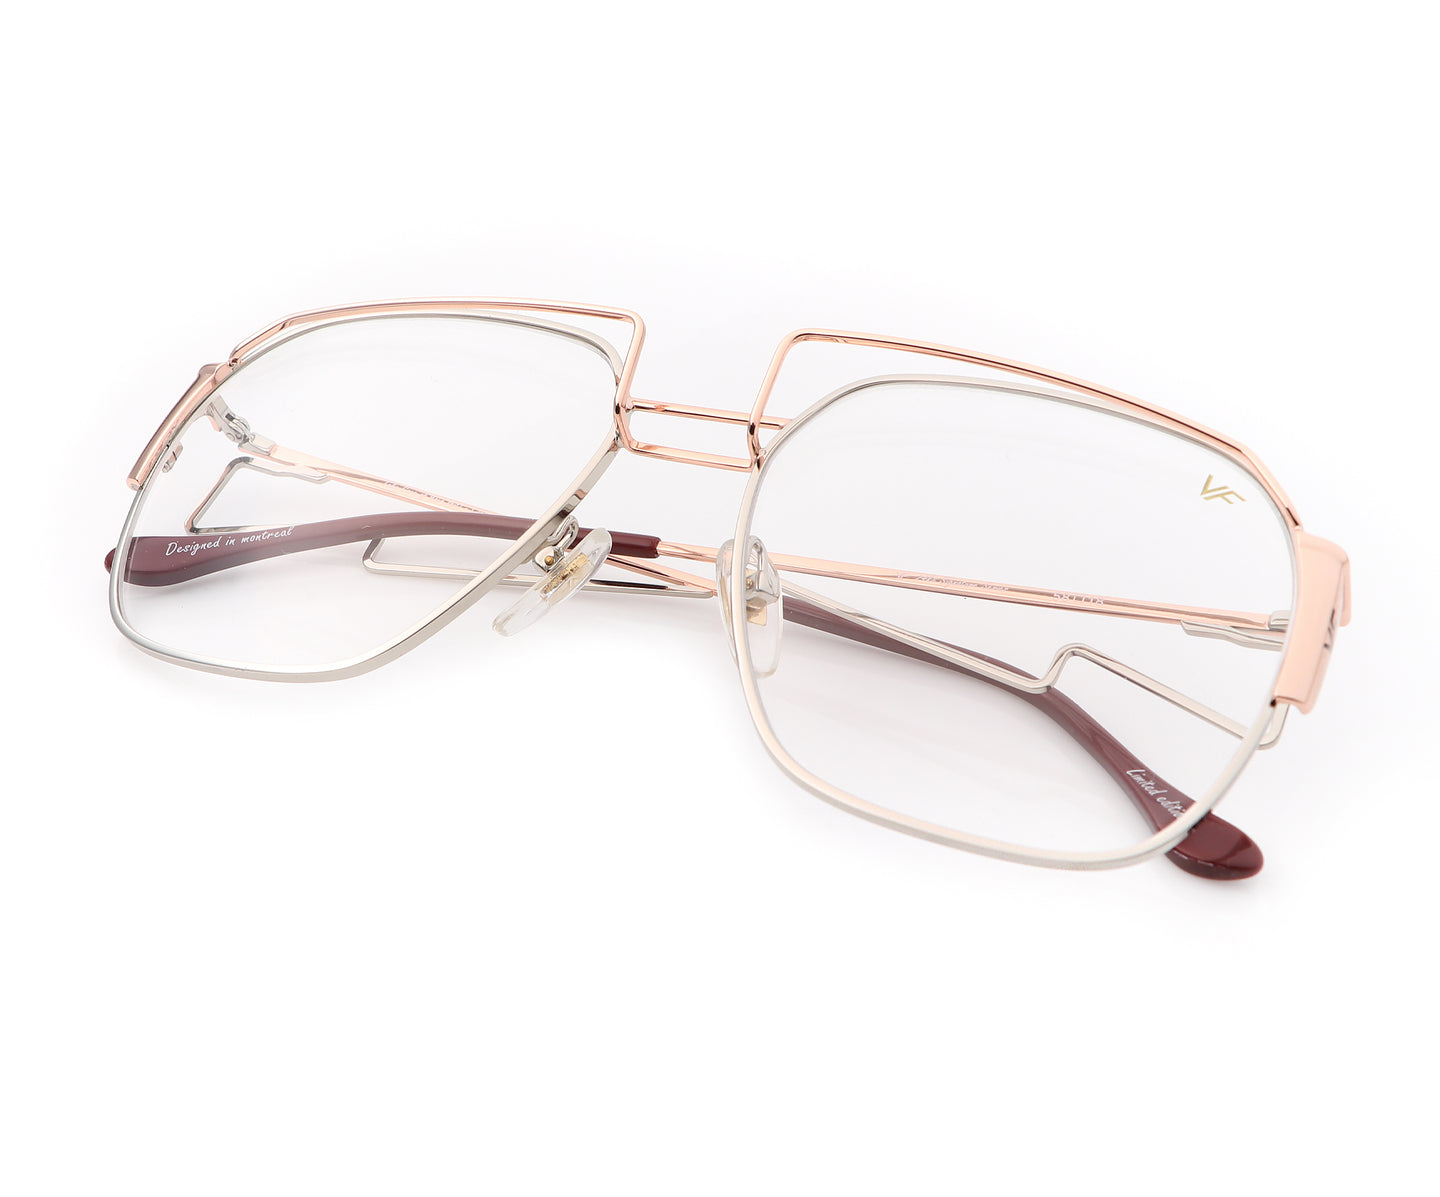 Geometric Collection: Executive 24KT Rose Gold Two-Tone (Clear), VF Masterpiece , glasses frames, eyeglasses online, eyeglass frames, mens glasses, womens glasses, buy glasses online, designer eyeglasses, vintage sunglasses, retro sunglasses, vintage glasses, sunglass, eyeglass, glasses, lens, vintage frames company, vf